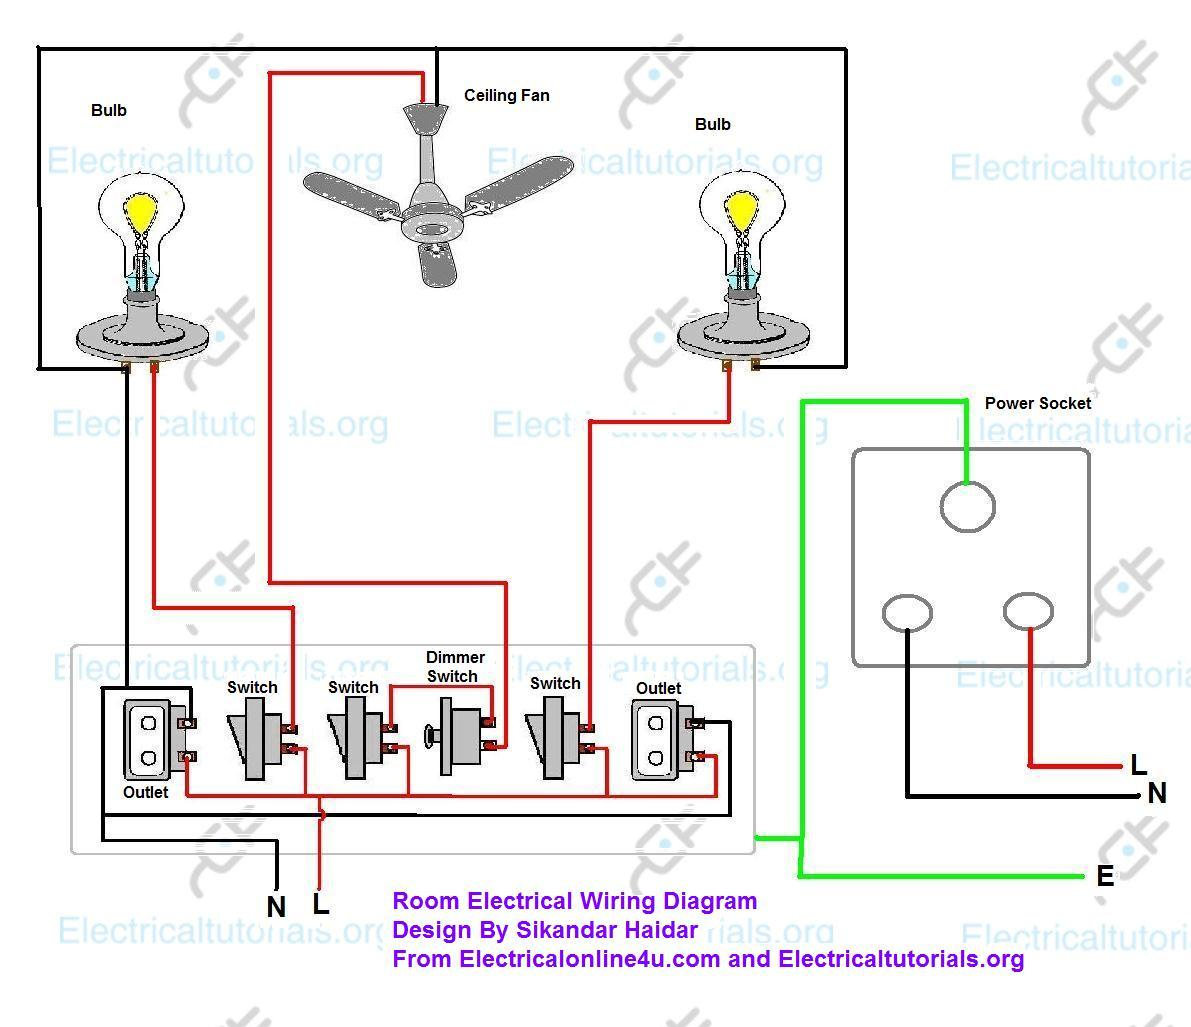 Home Electrical Wiring Diagrams:  www.redglobalmx.org,Design